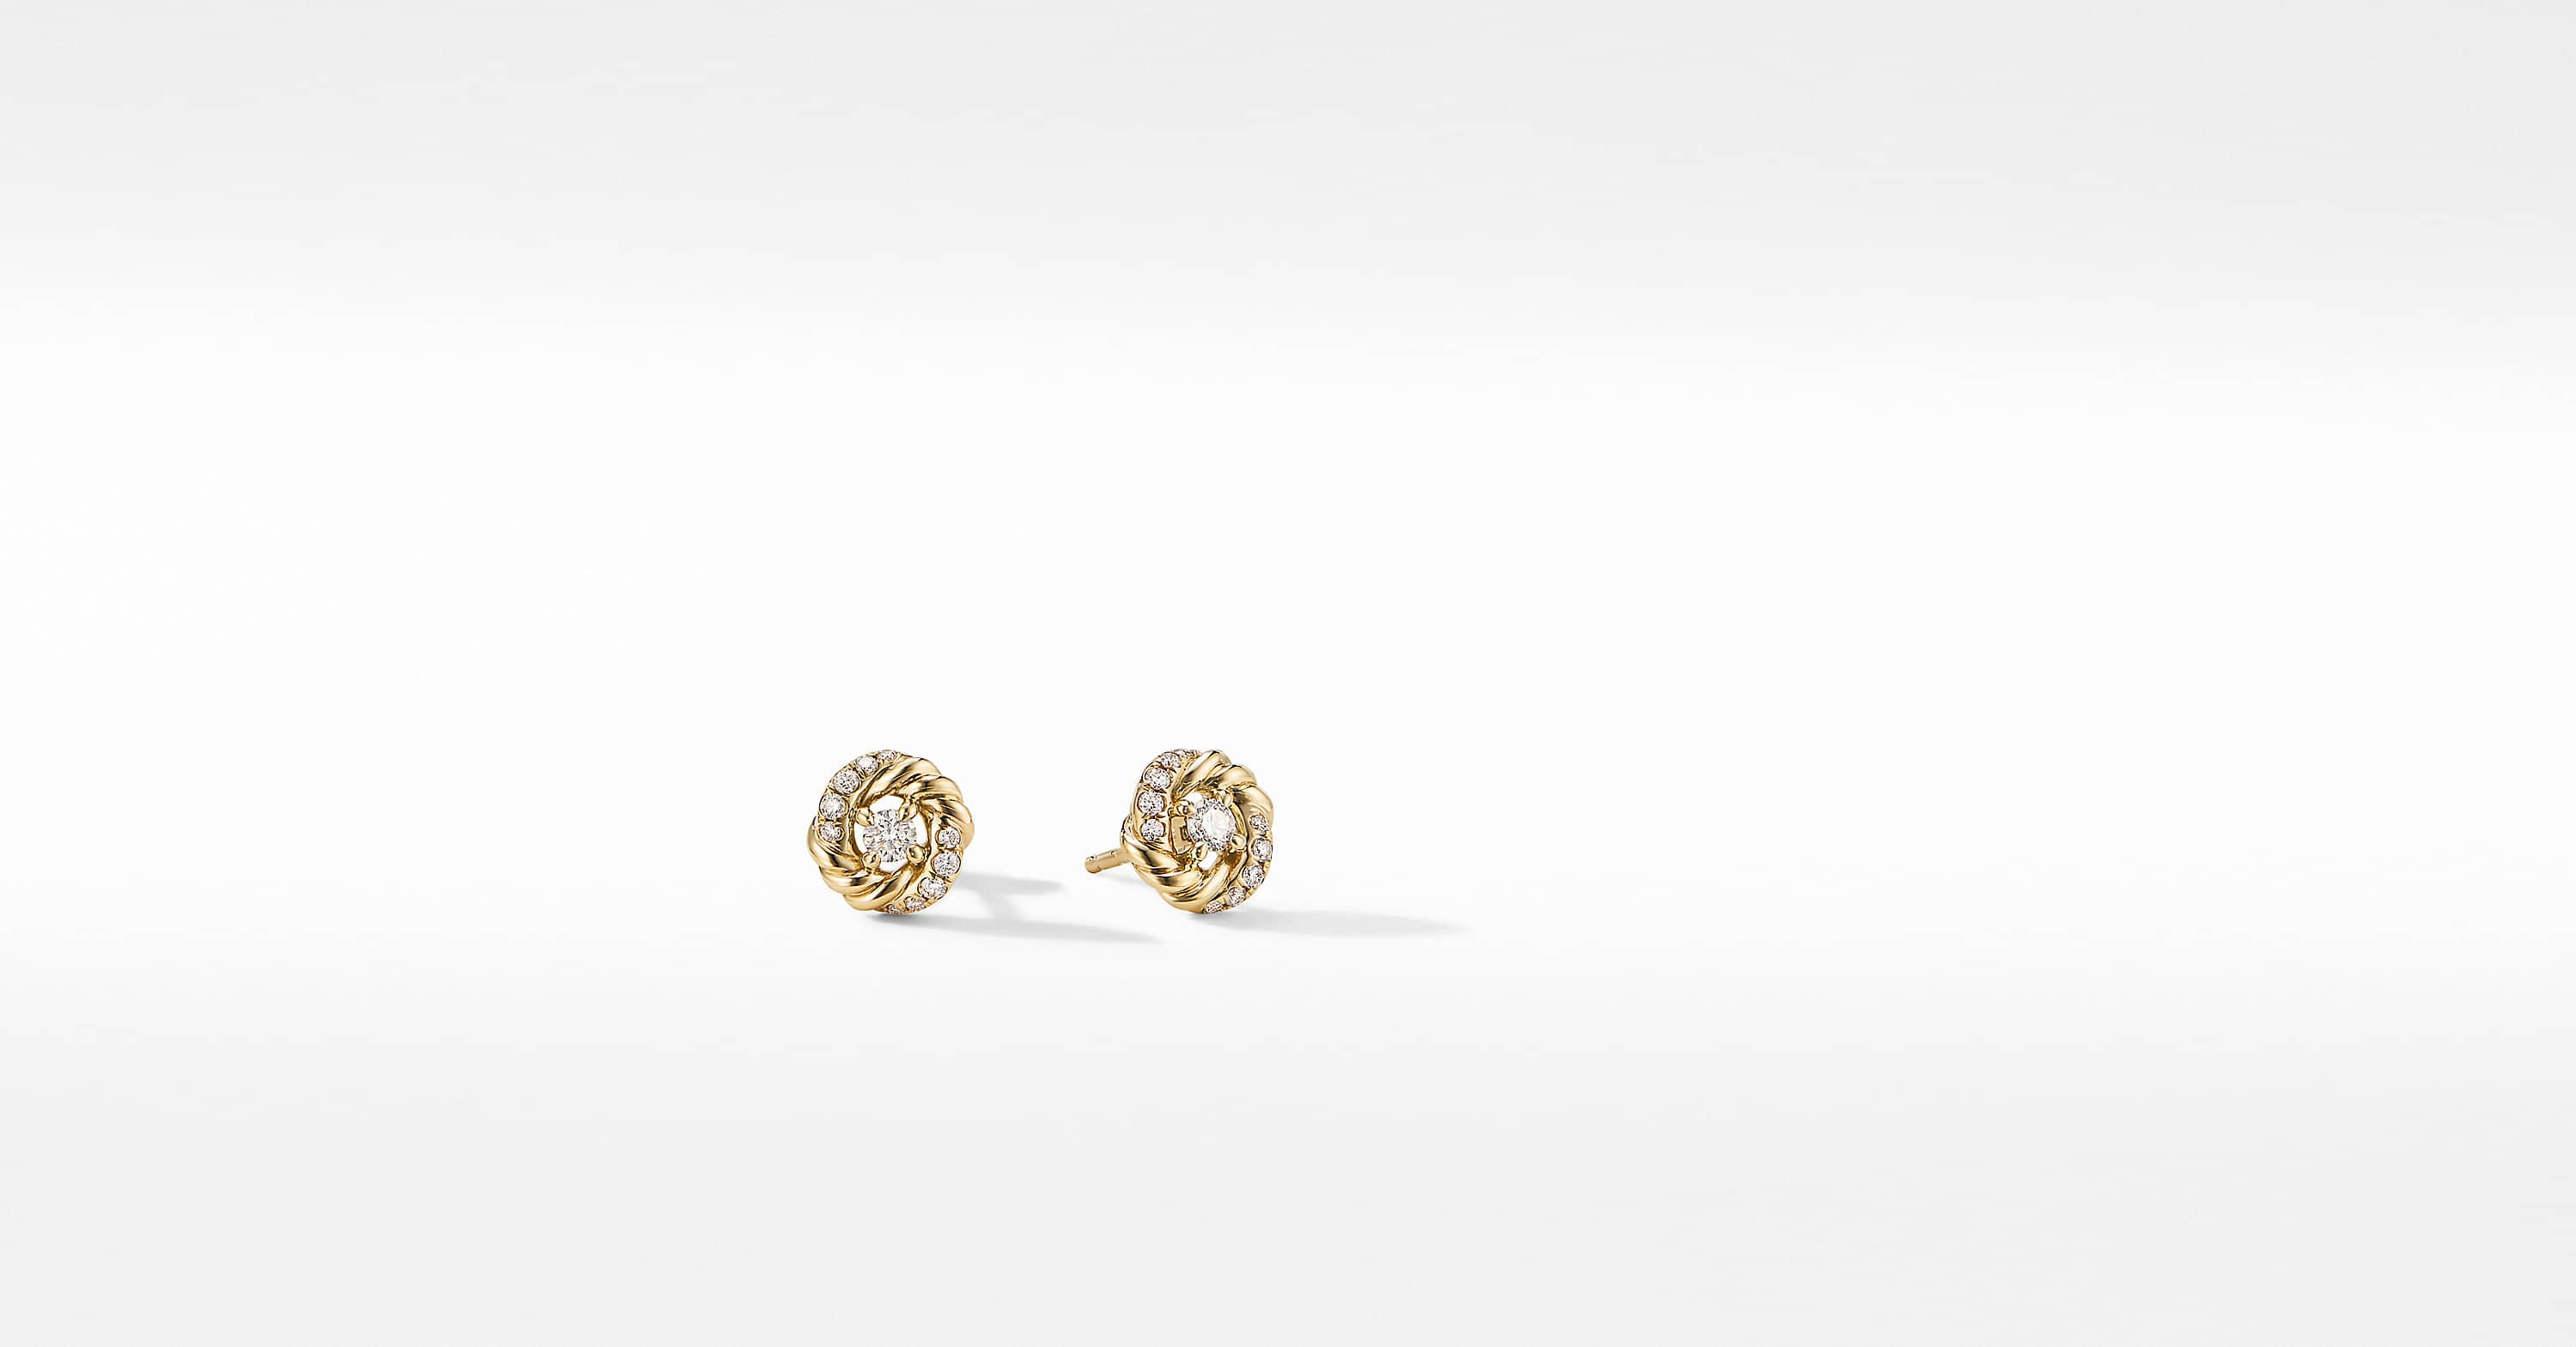 Petite Infinity Stud Earrings in 18K Yellow Gold with Diamonds